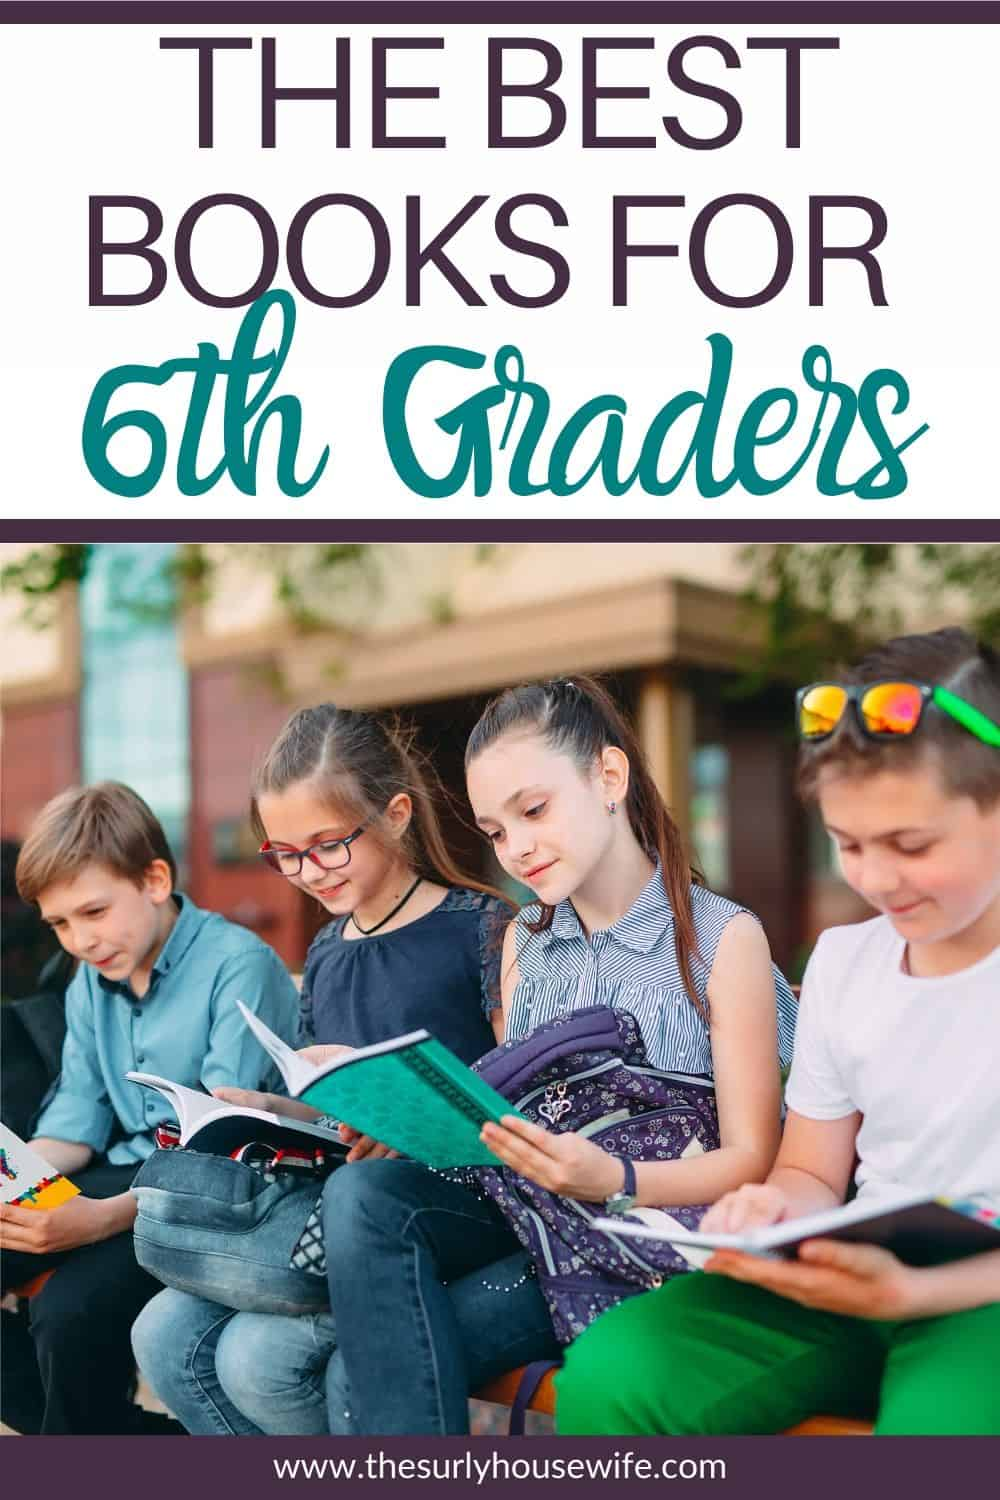 Searching for must-read books for sixth graders? Don't miss this post for over 50 fun and memorable book recommendations for 6th graders or 12 year olds.